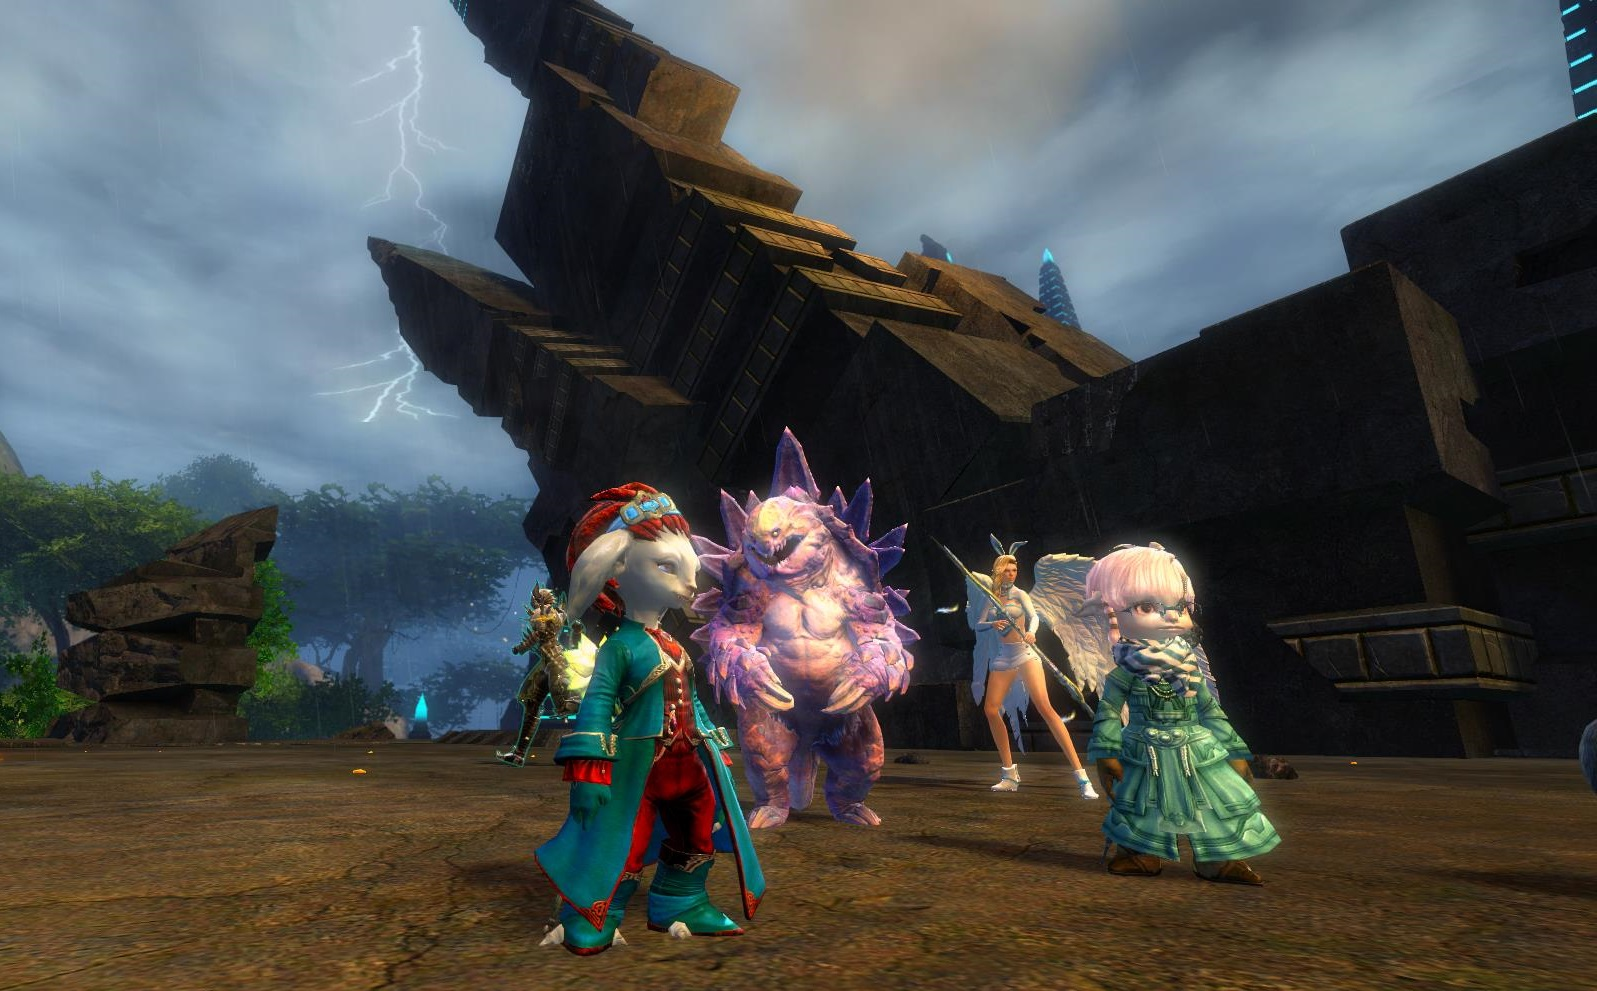 Guild wars 2 gw2 darkened desires gw2 fashion - The Pink Fluffy Thing Scurries About Like A Cross Between A Bunny Rabbit And A Hamster And Occasionally Rears Up On Its Hind Legs And Peers Goofily To The